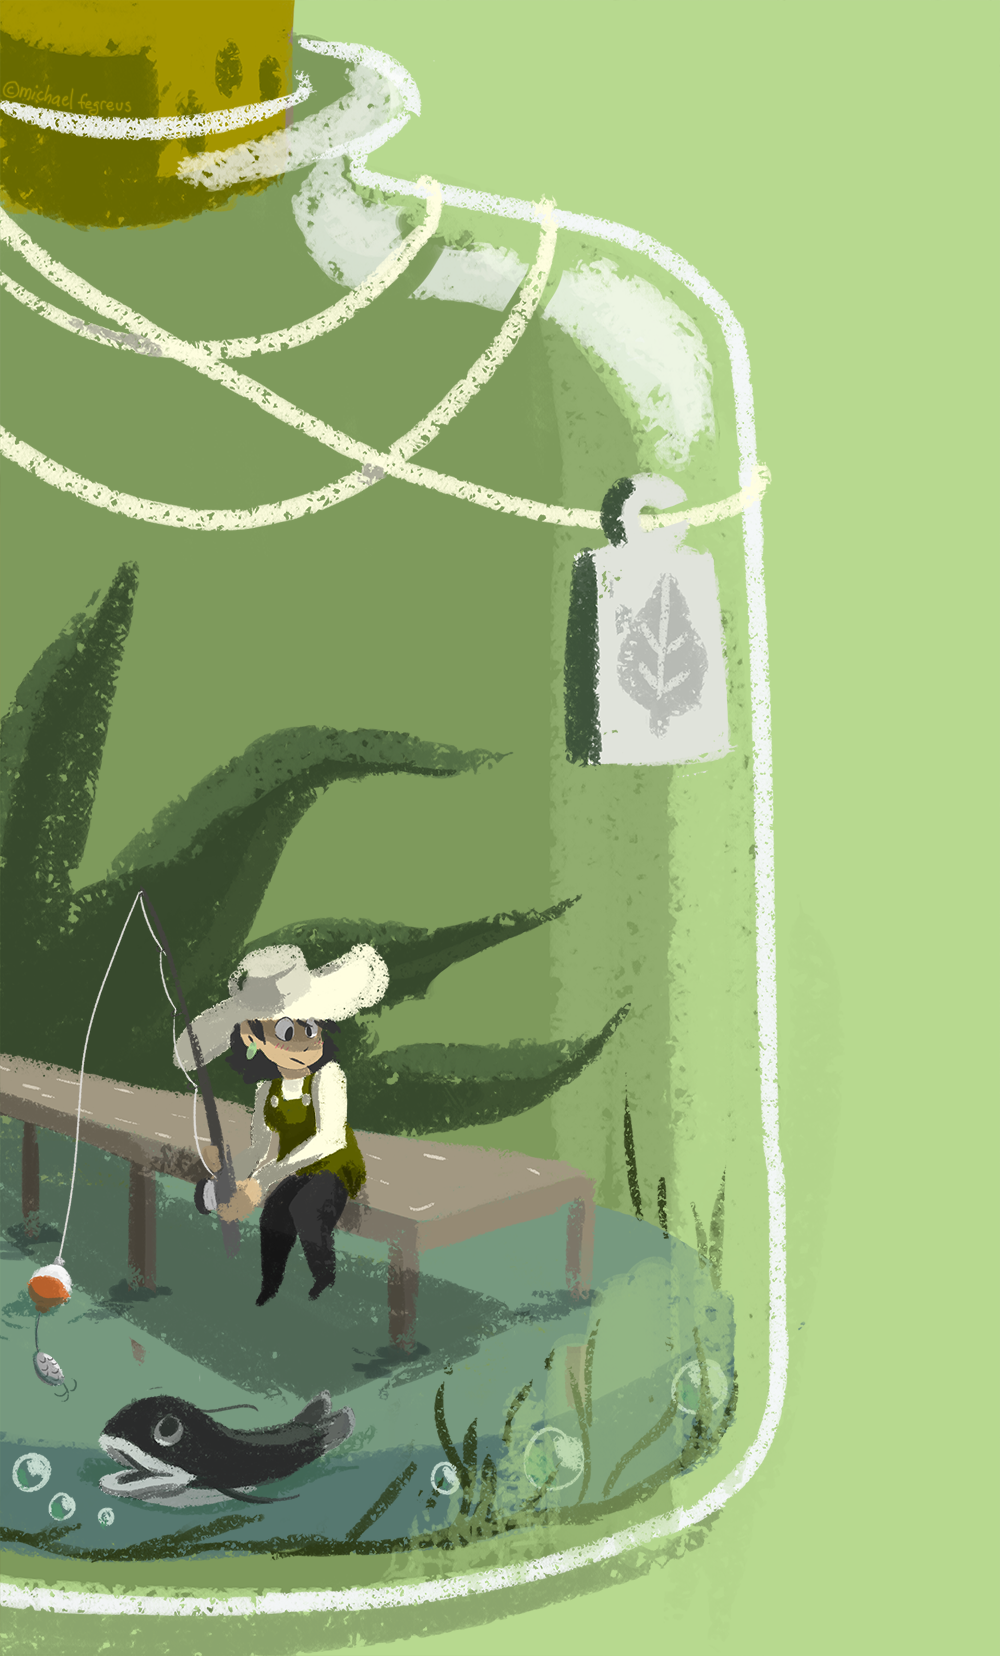 fishin_01_smaller.png